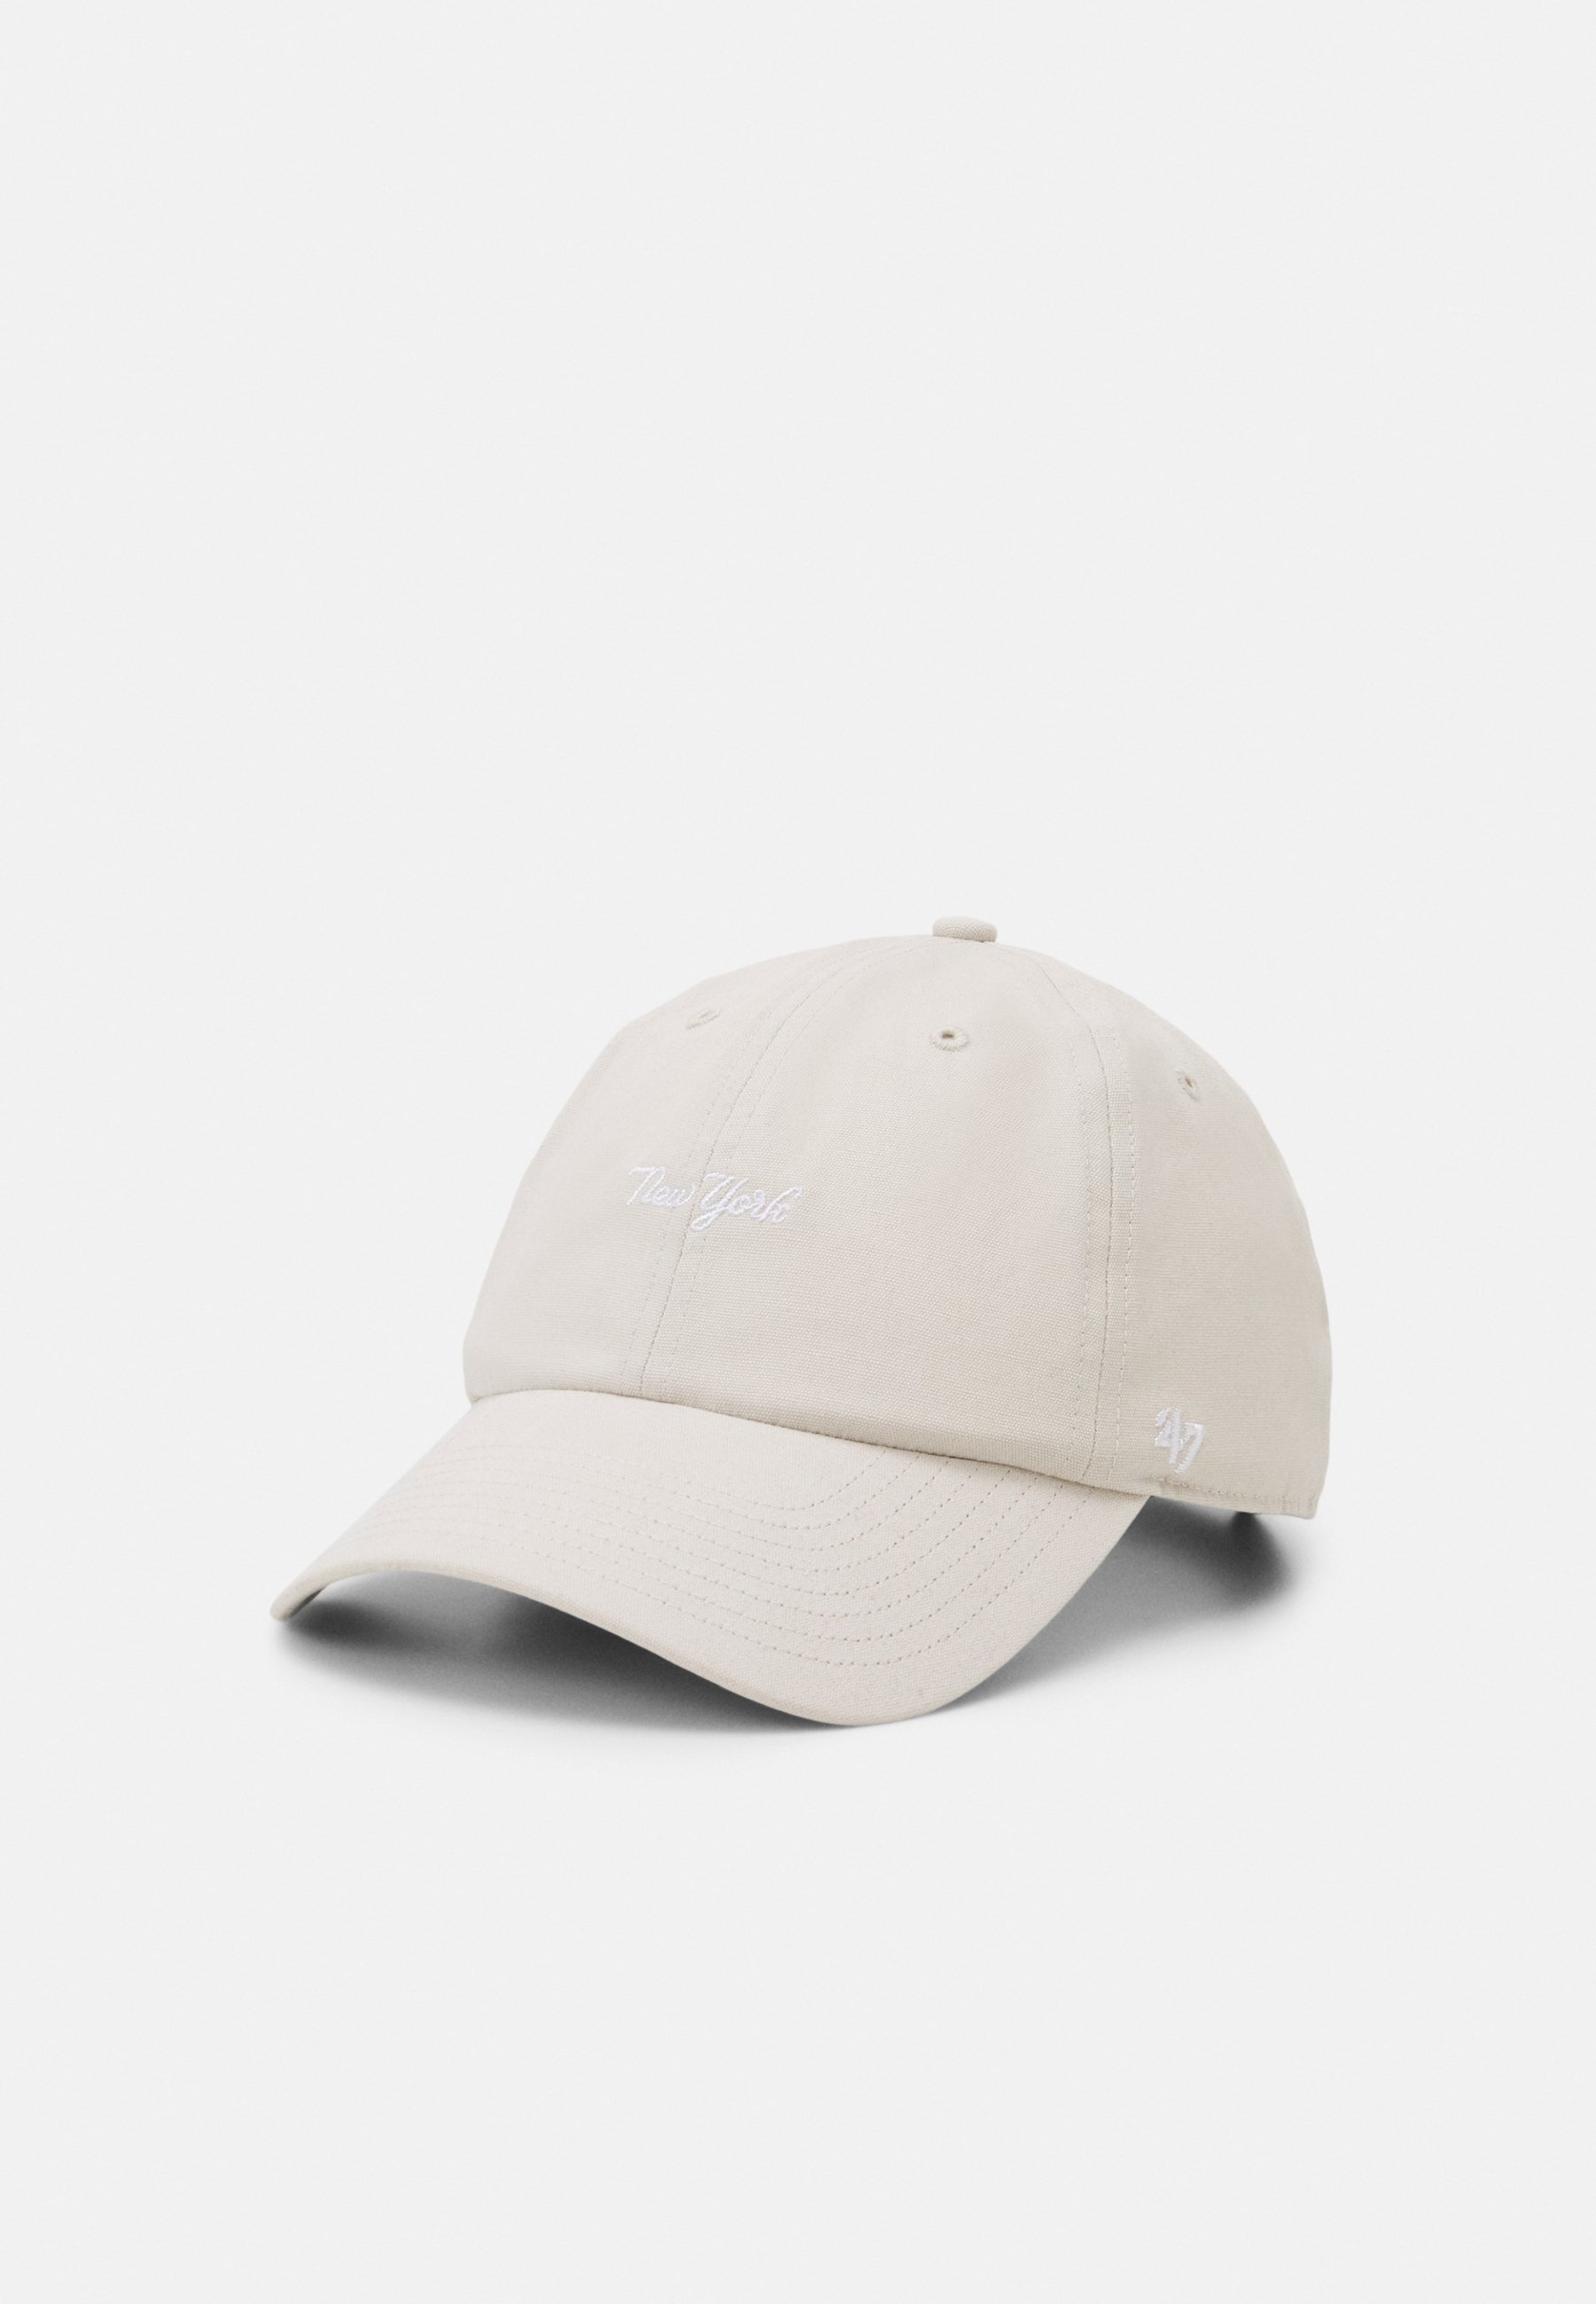 Homme NEW YORK YANKEES VINTAGE 47 CLEAN UP UNISEX - Casquette